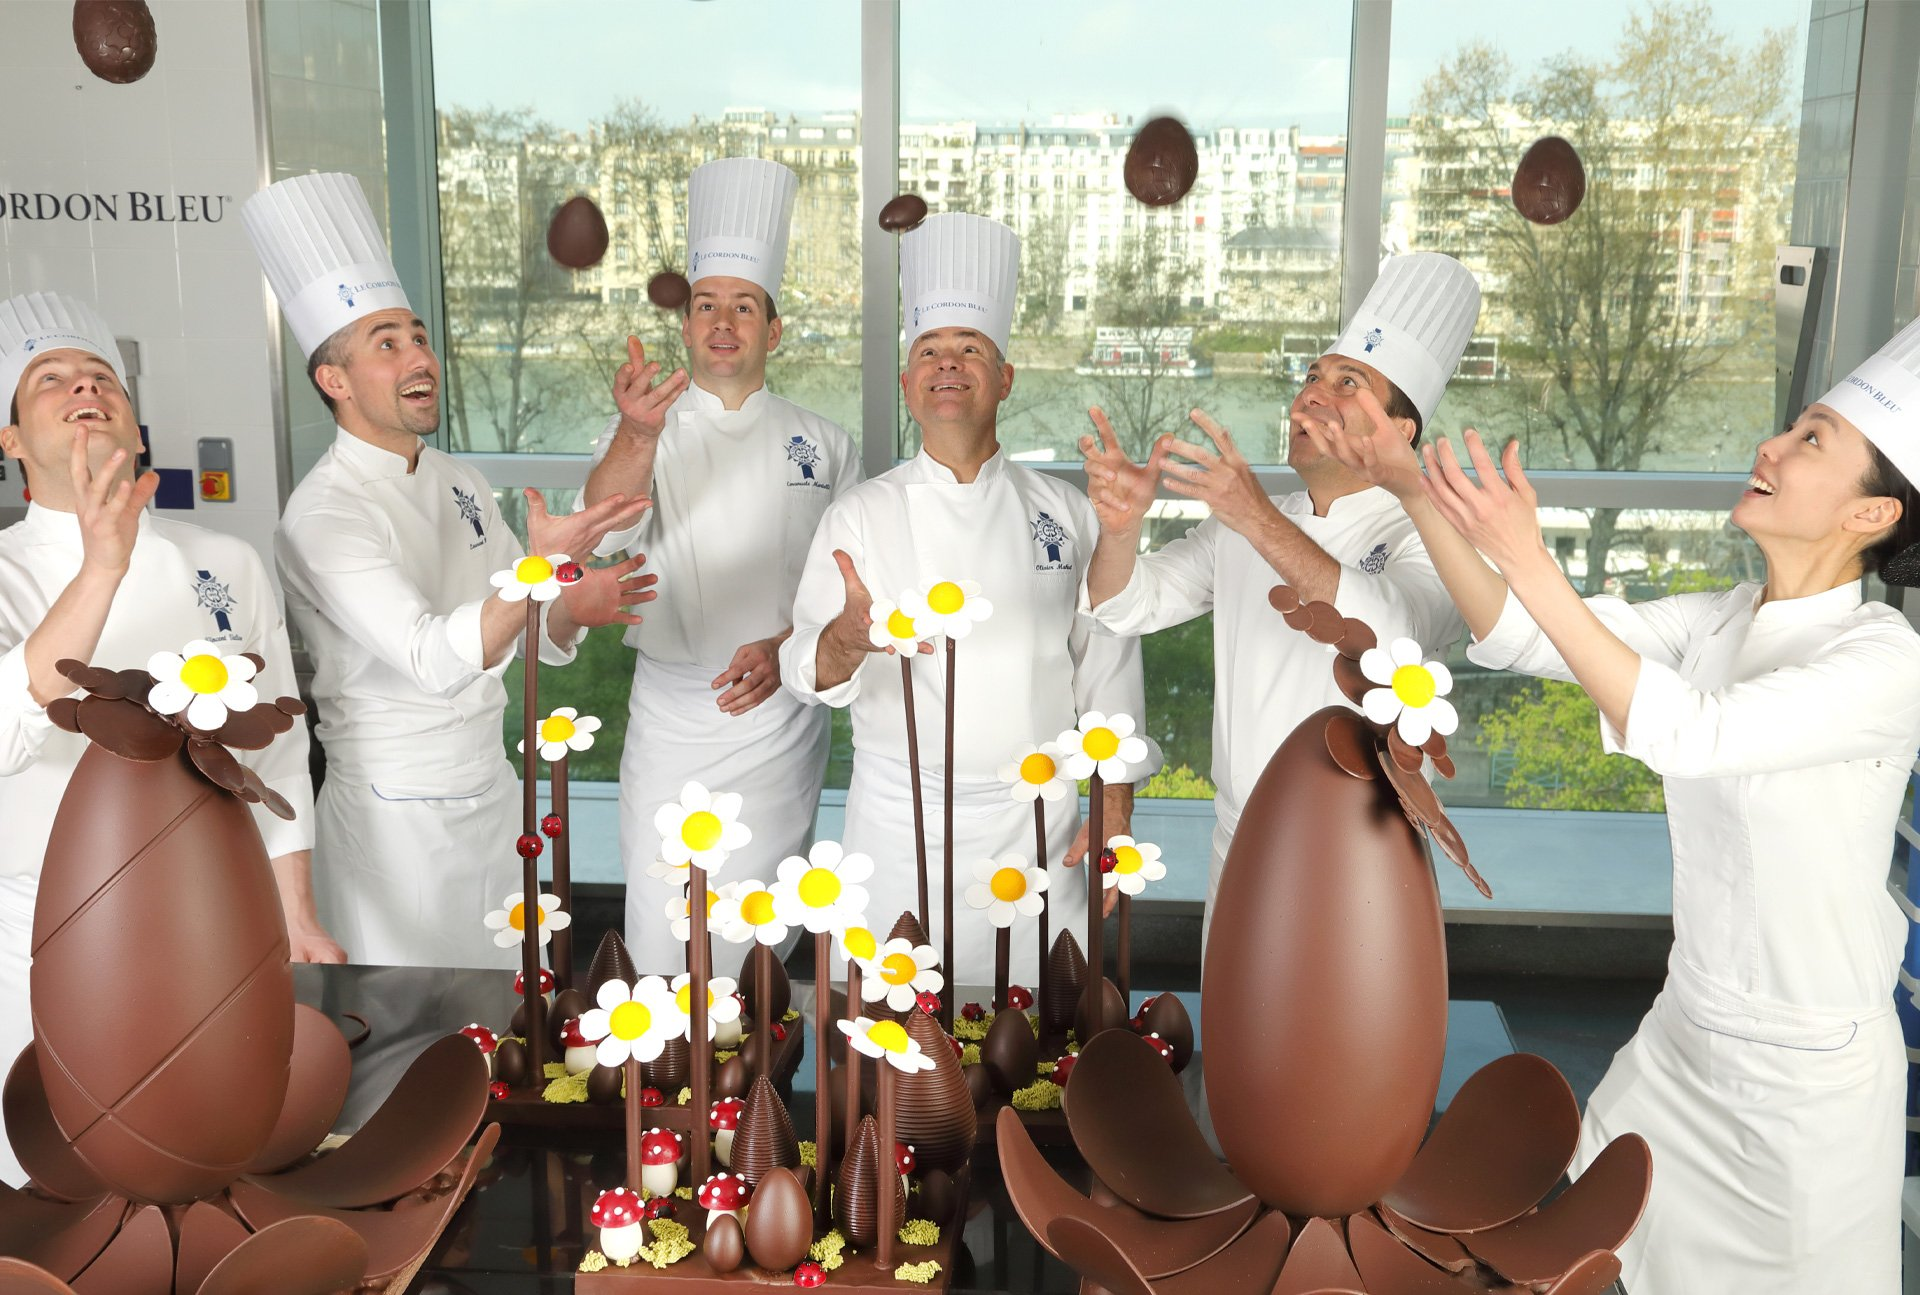 Children celebrate Easter at Beaugrenelle Paris | Le Cordon Bleu Paris